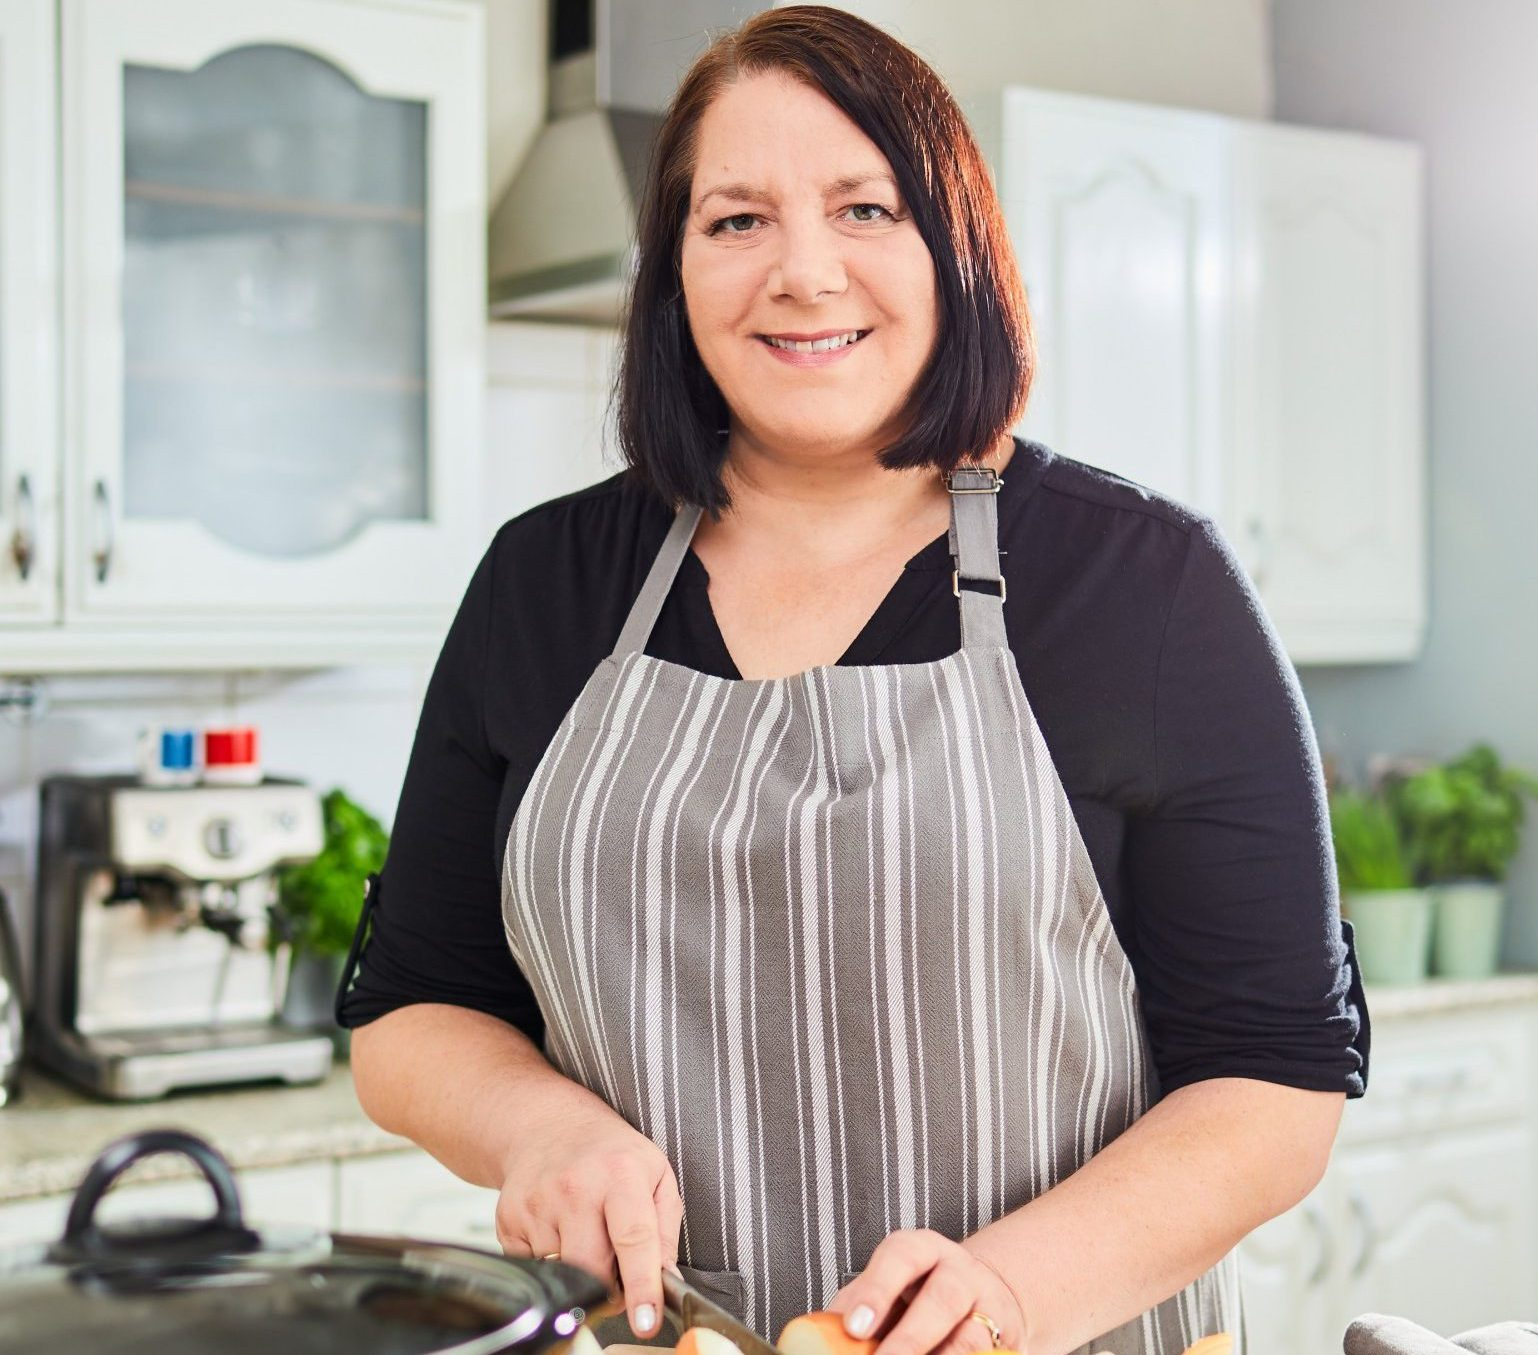 Jane Ashley, 50, from London who has published her second cookbook that shows how to make remarkably cheap meals. Pictured here November 2018. A MUM-OF-ONE has shown how to feed two people gourmet meals for as little as 60p per plate ? whilst still buying high-end ingredients like free-range chicken and organic eggs. Jane Ashley, 50, from London, has published her second cookbook to prove how you can conquer the challenging task of feeding two people on a shoestring budget - without any wasted leftovers. Her frugal yet delicious meals for two include roasted butternut squash risotto for 60p per serving, chorizo omelette with potato wedges and coleslaw salad for just ?1 per portion, aubergine katsu curry with rice and Japanese salad for ?1.20 each and slow-cooked beef and ale pie or even Jambalaya for under ?2 per person. Jane has shared some of the scrumptious recipes from her new book, ?Home Economics 2.0 Cooking for two on a budget?. ... SEE COPY AND VID ... PIC BY NEWS DOG MEDIA ... 0121 517 0019